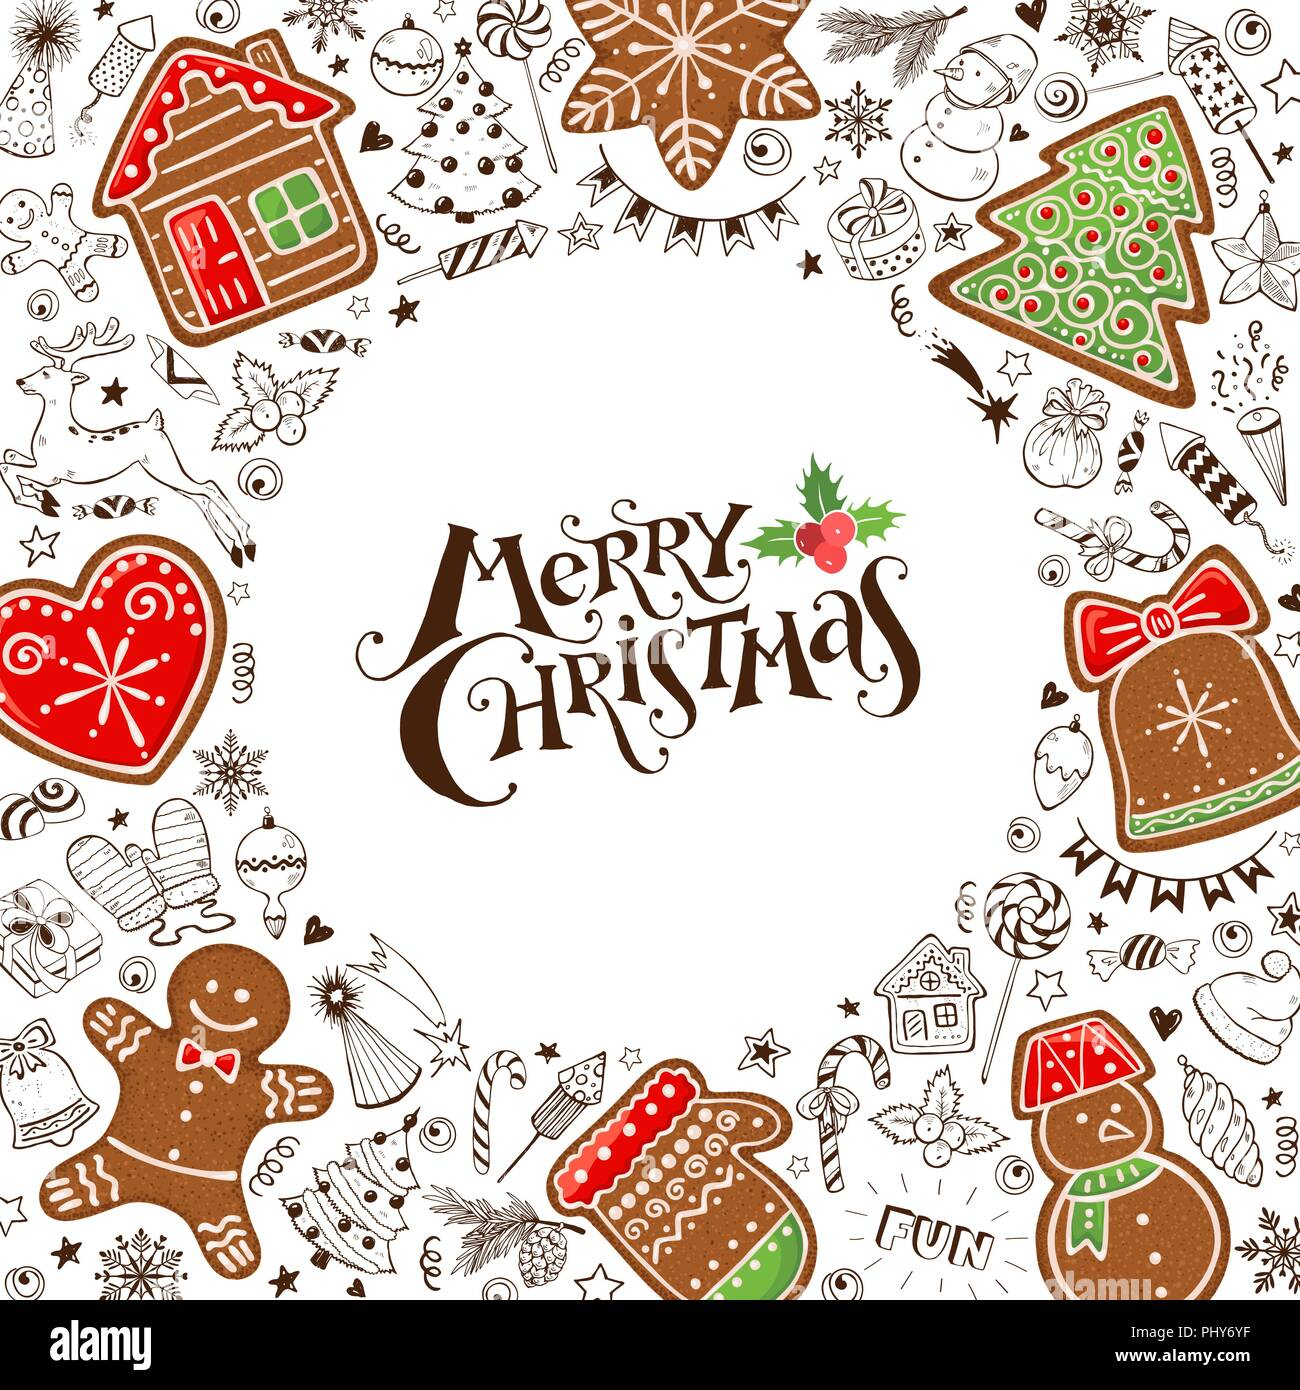 hand drawn merry christmas gingerbread in circle composition around text vector illustration of new year doodles isolated on white background happ